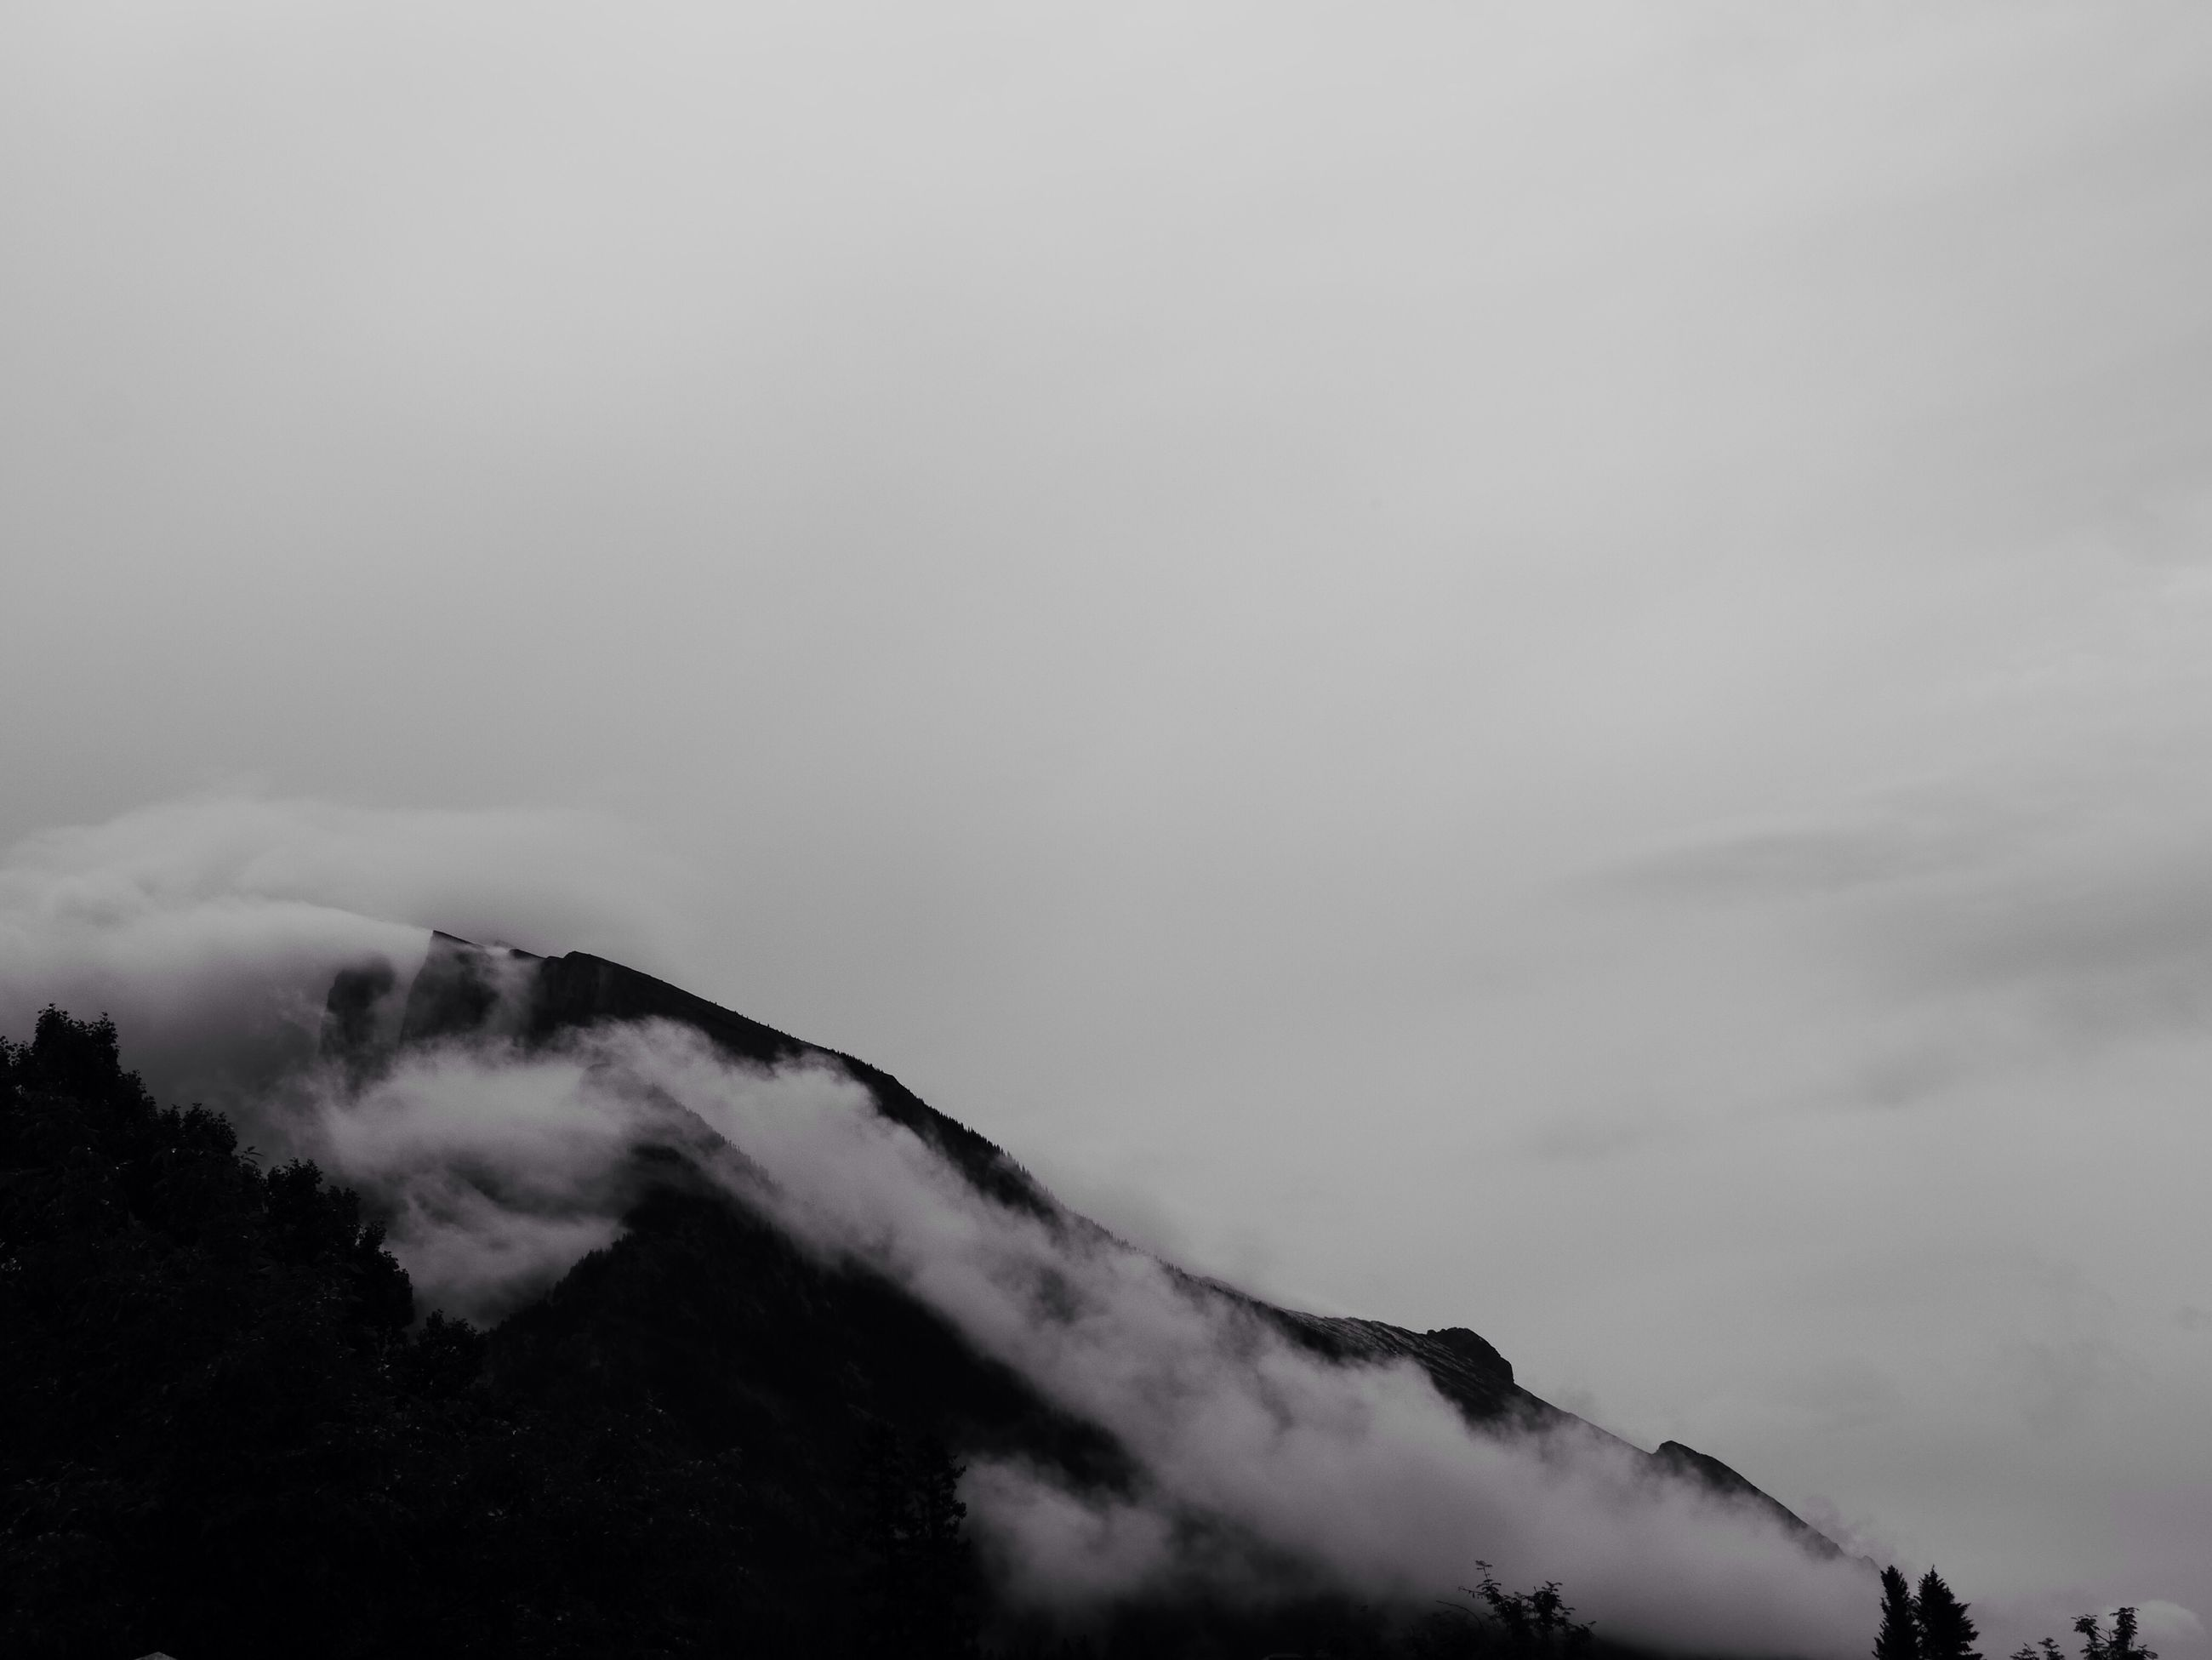 sky, tranquility, scenics, tranquil scene, beauty in nature, cloud - sky, weather, low angle view, nature, mountain, cloudy, tree, idyllic, overcast, cloud, outdoors, fog, silhouette, cloudscape, no people